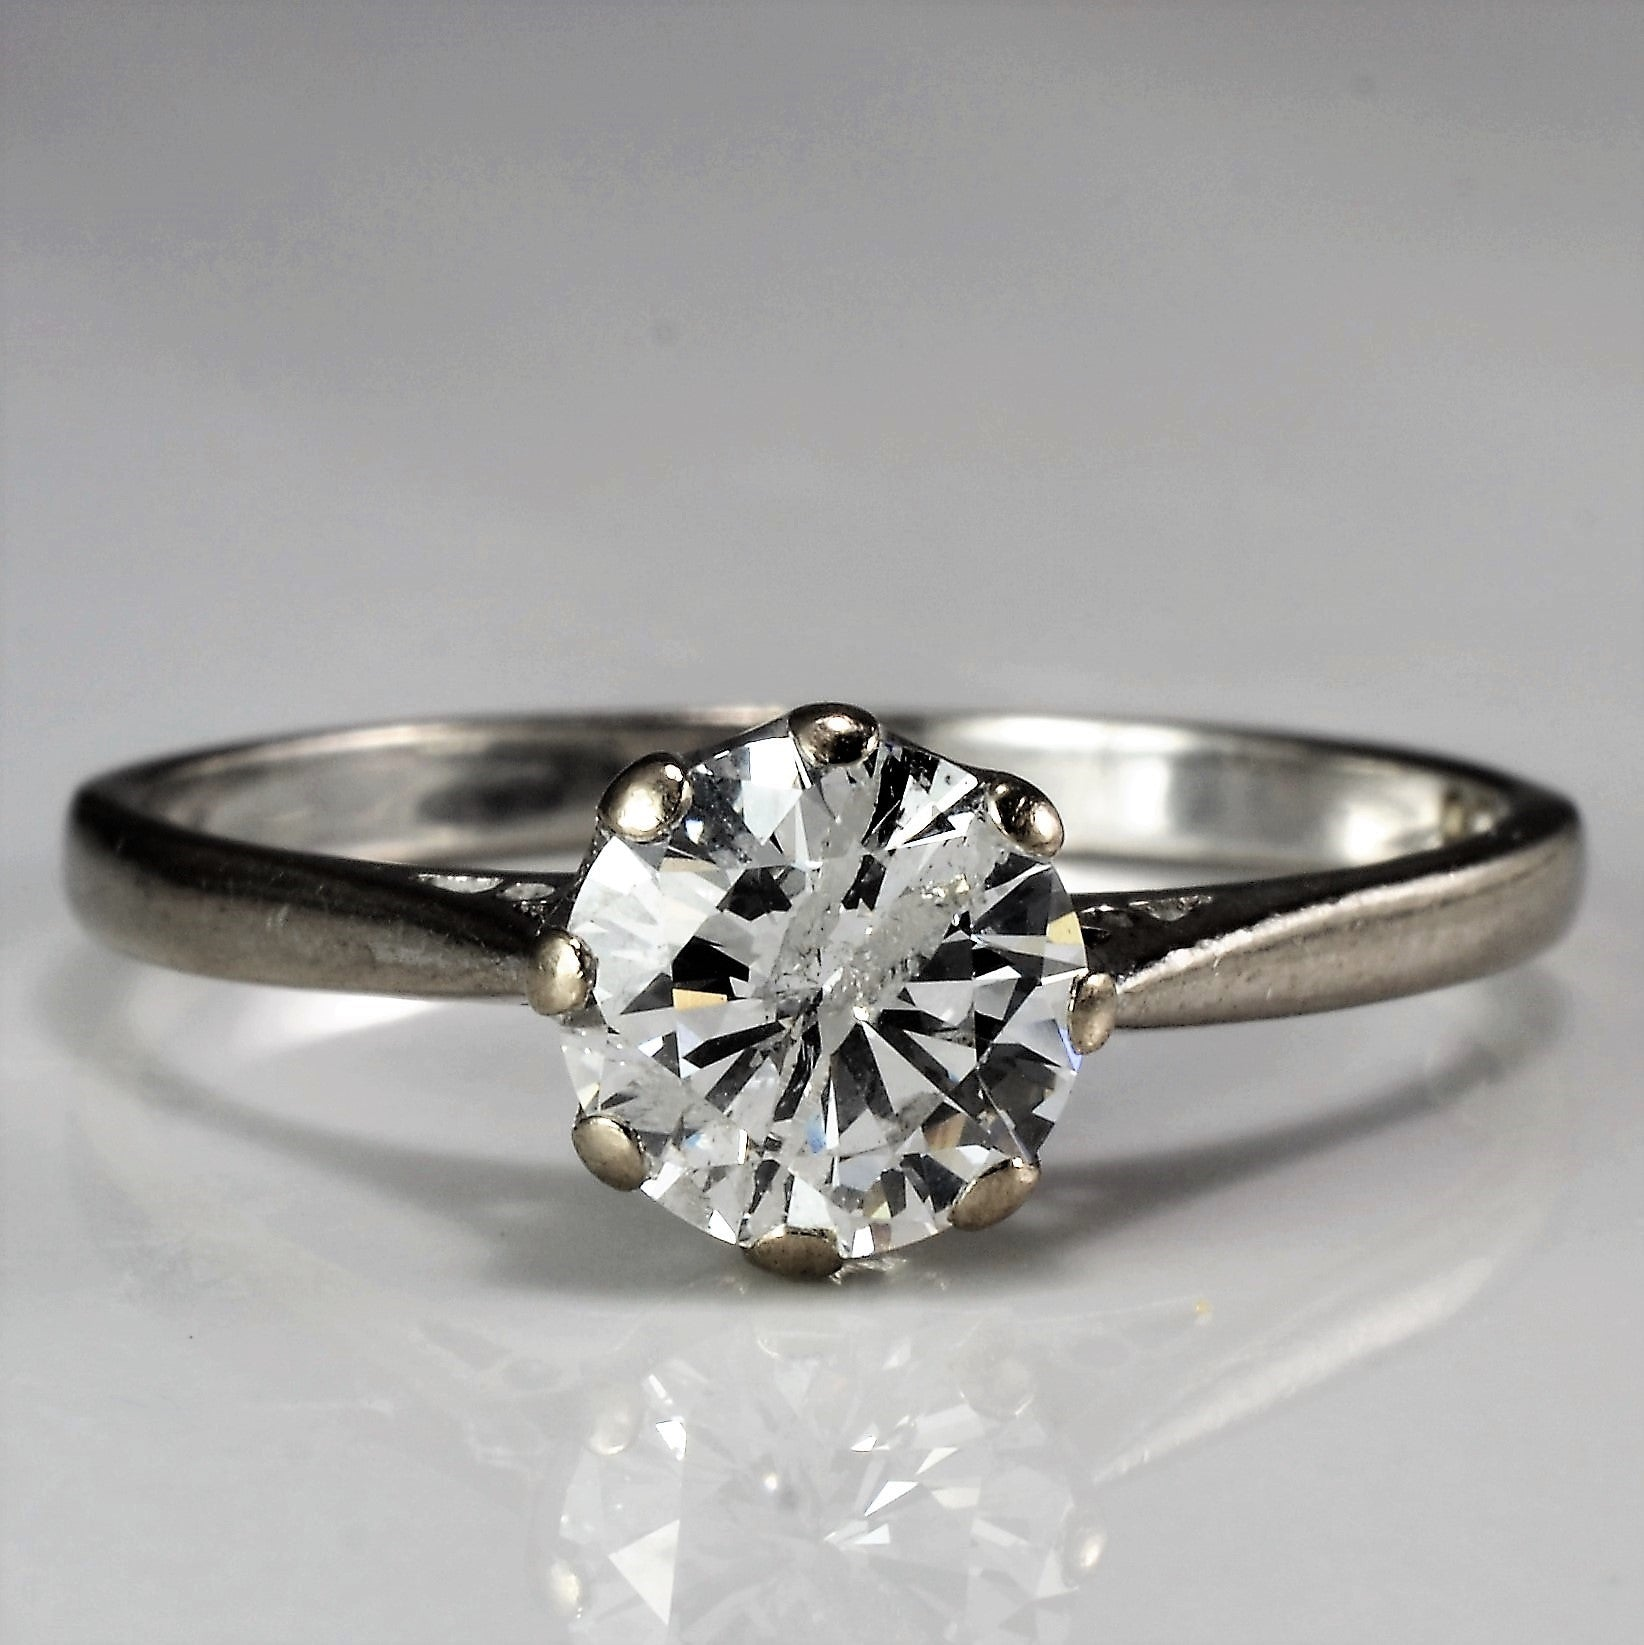 Eight Prong Solitaire Engagement Ring | 1.00 ct, SZ 9.25 |